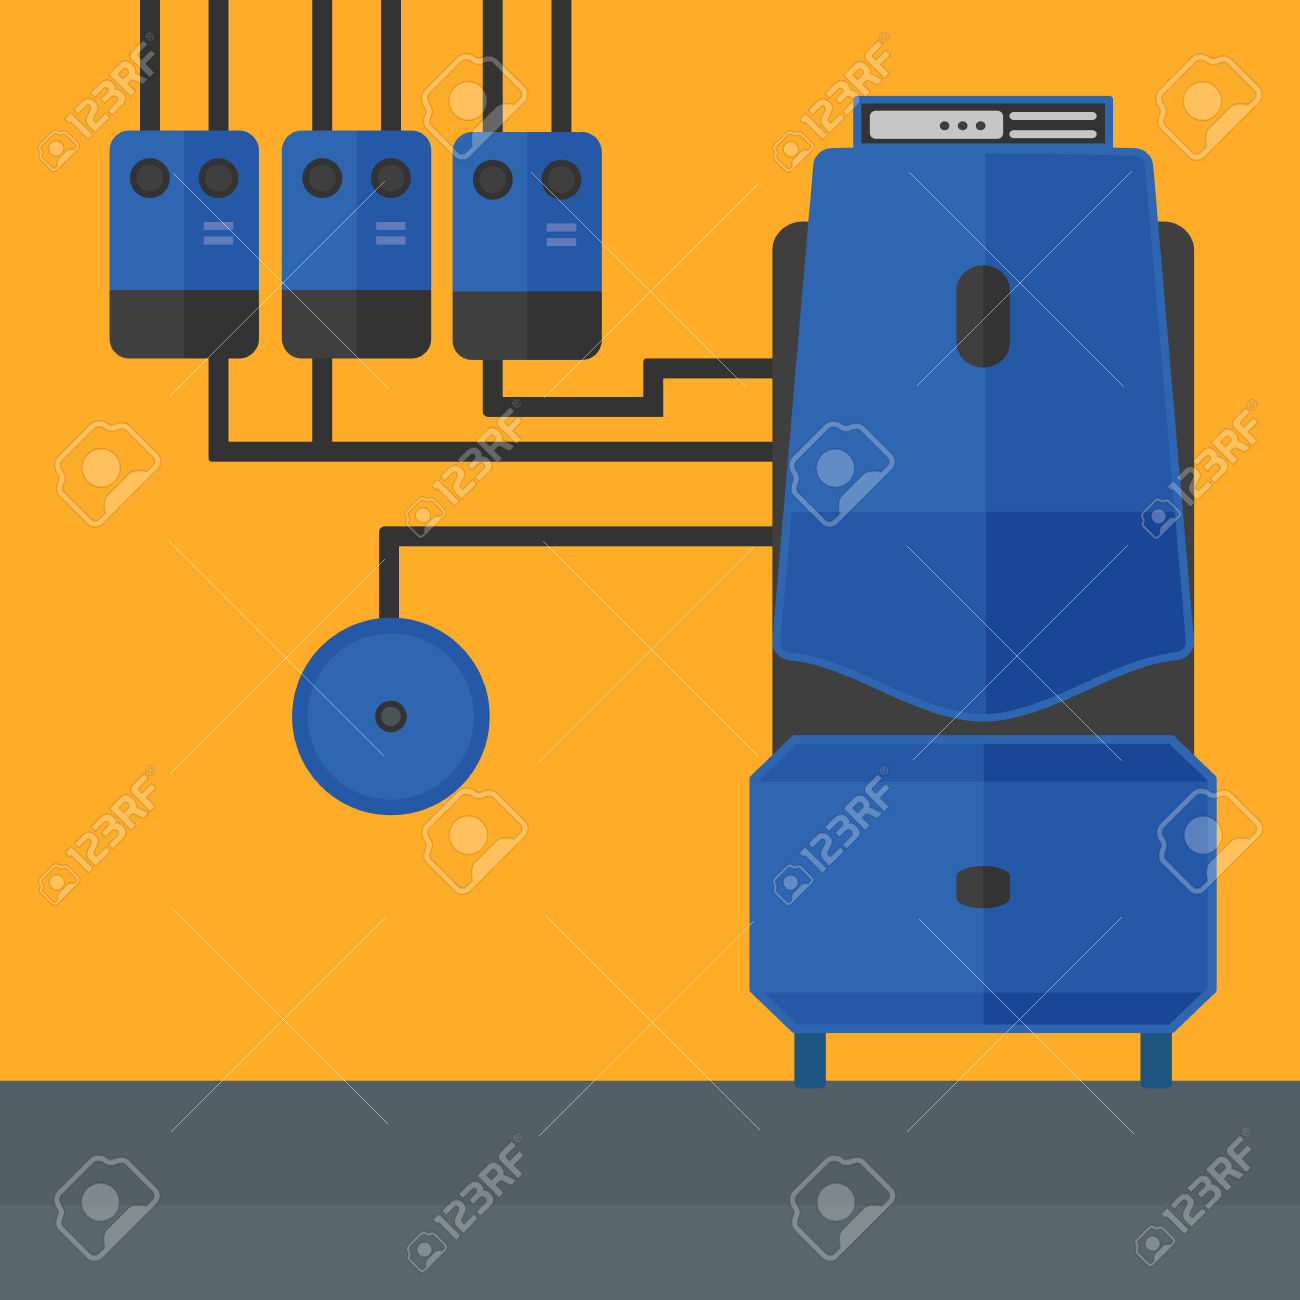 Background Of Domestic Household Boiler Room With Heating System.